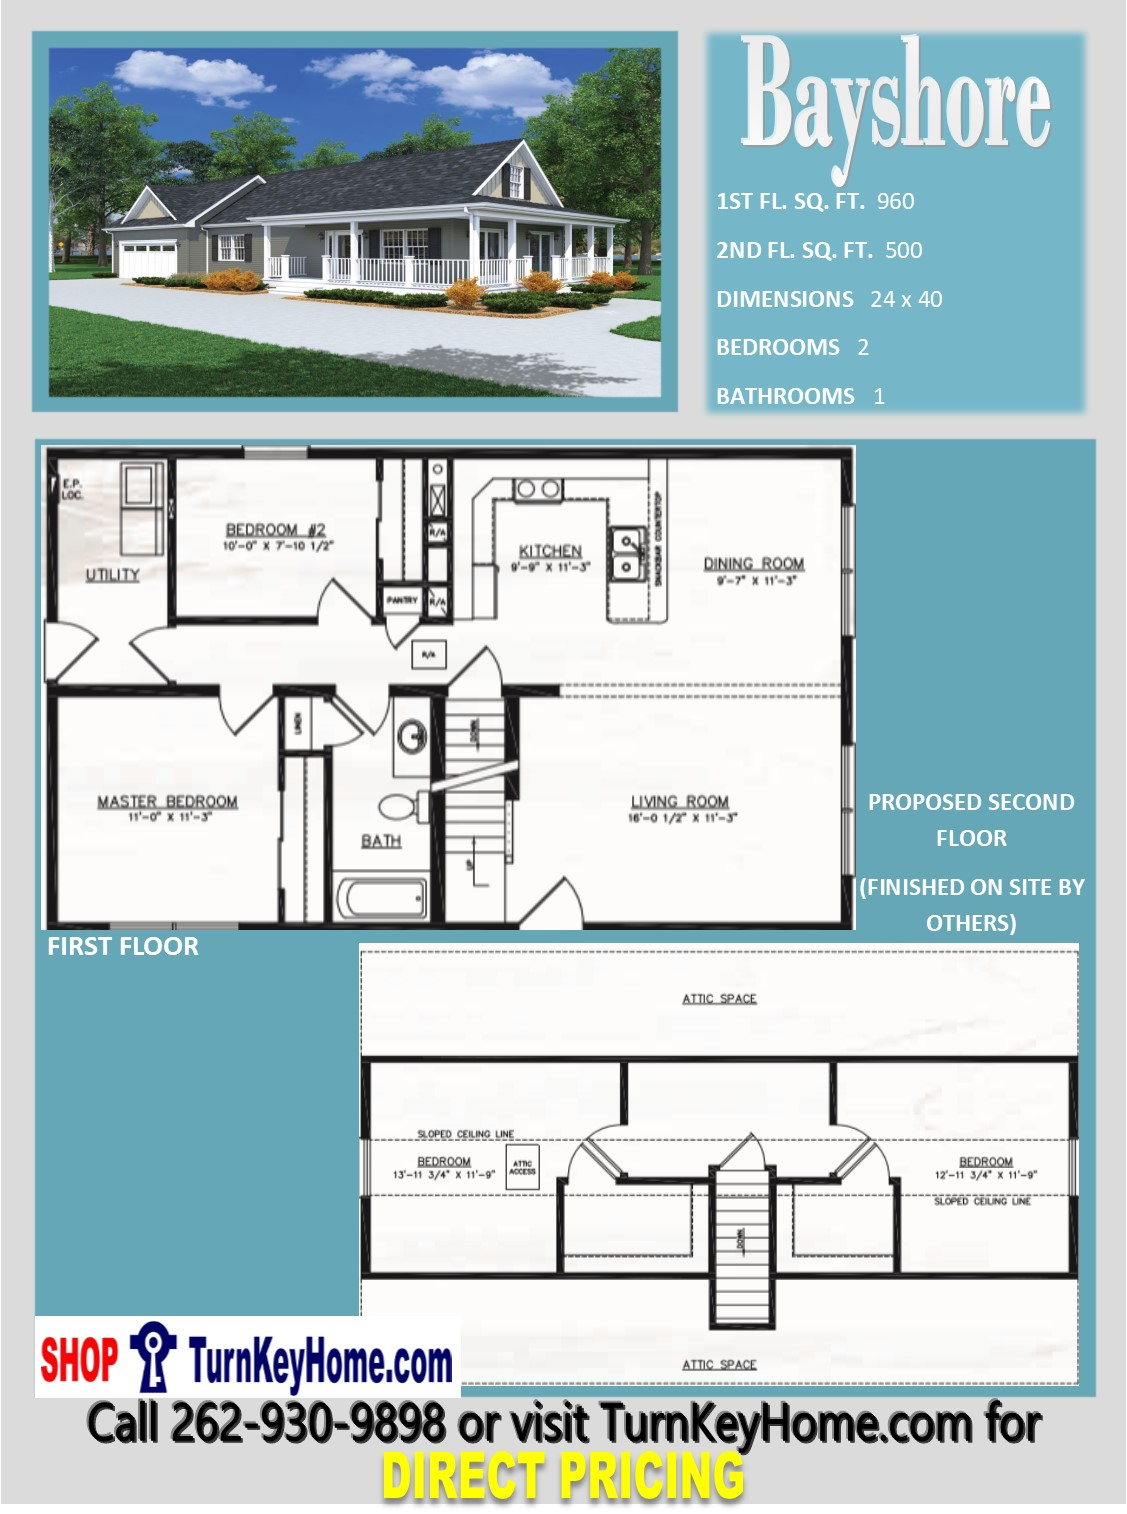 Bayshore cape cod style home 2 bed 1 bath plan 1460 sf for Direct from the designers house plans